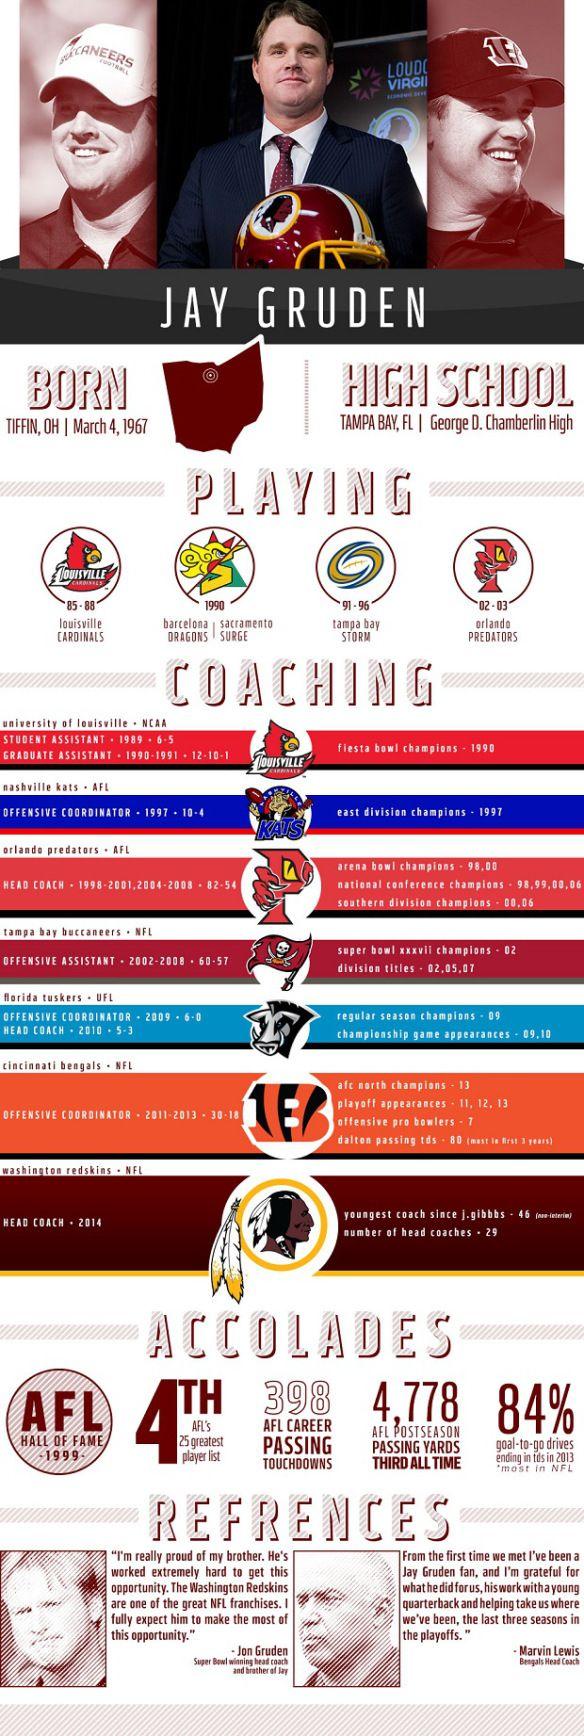 Jay Gruden Infographic